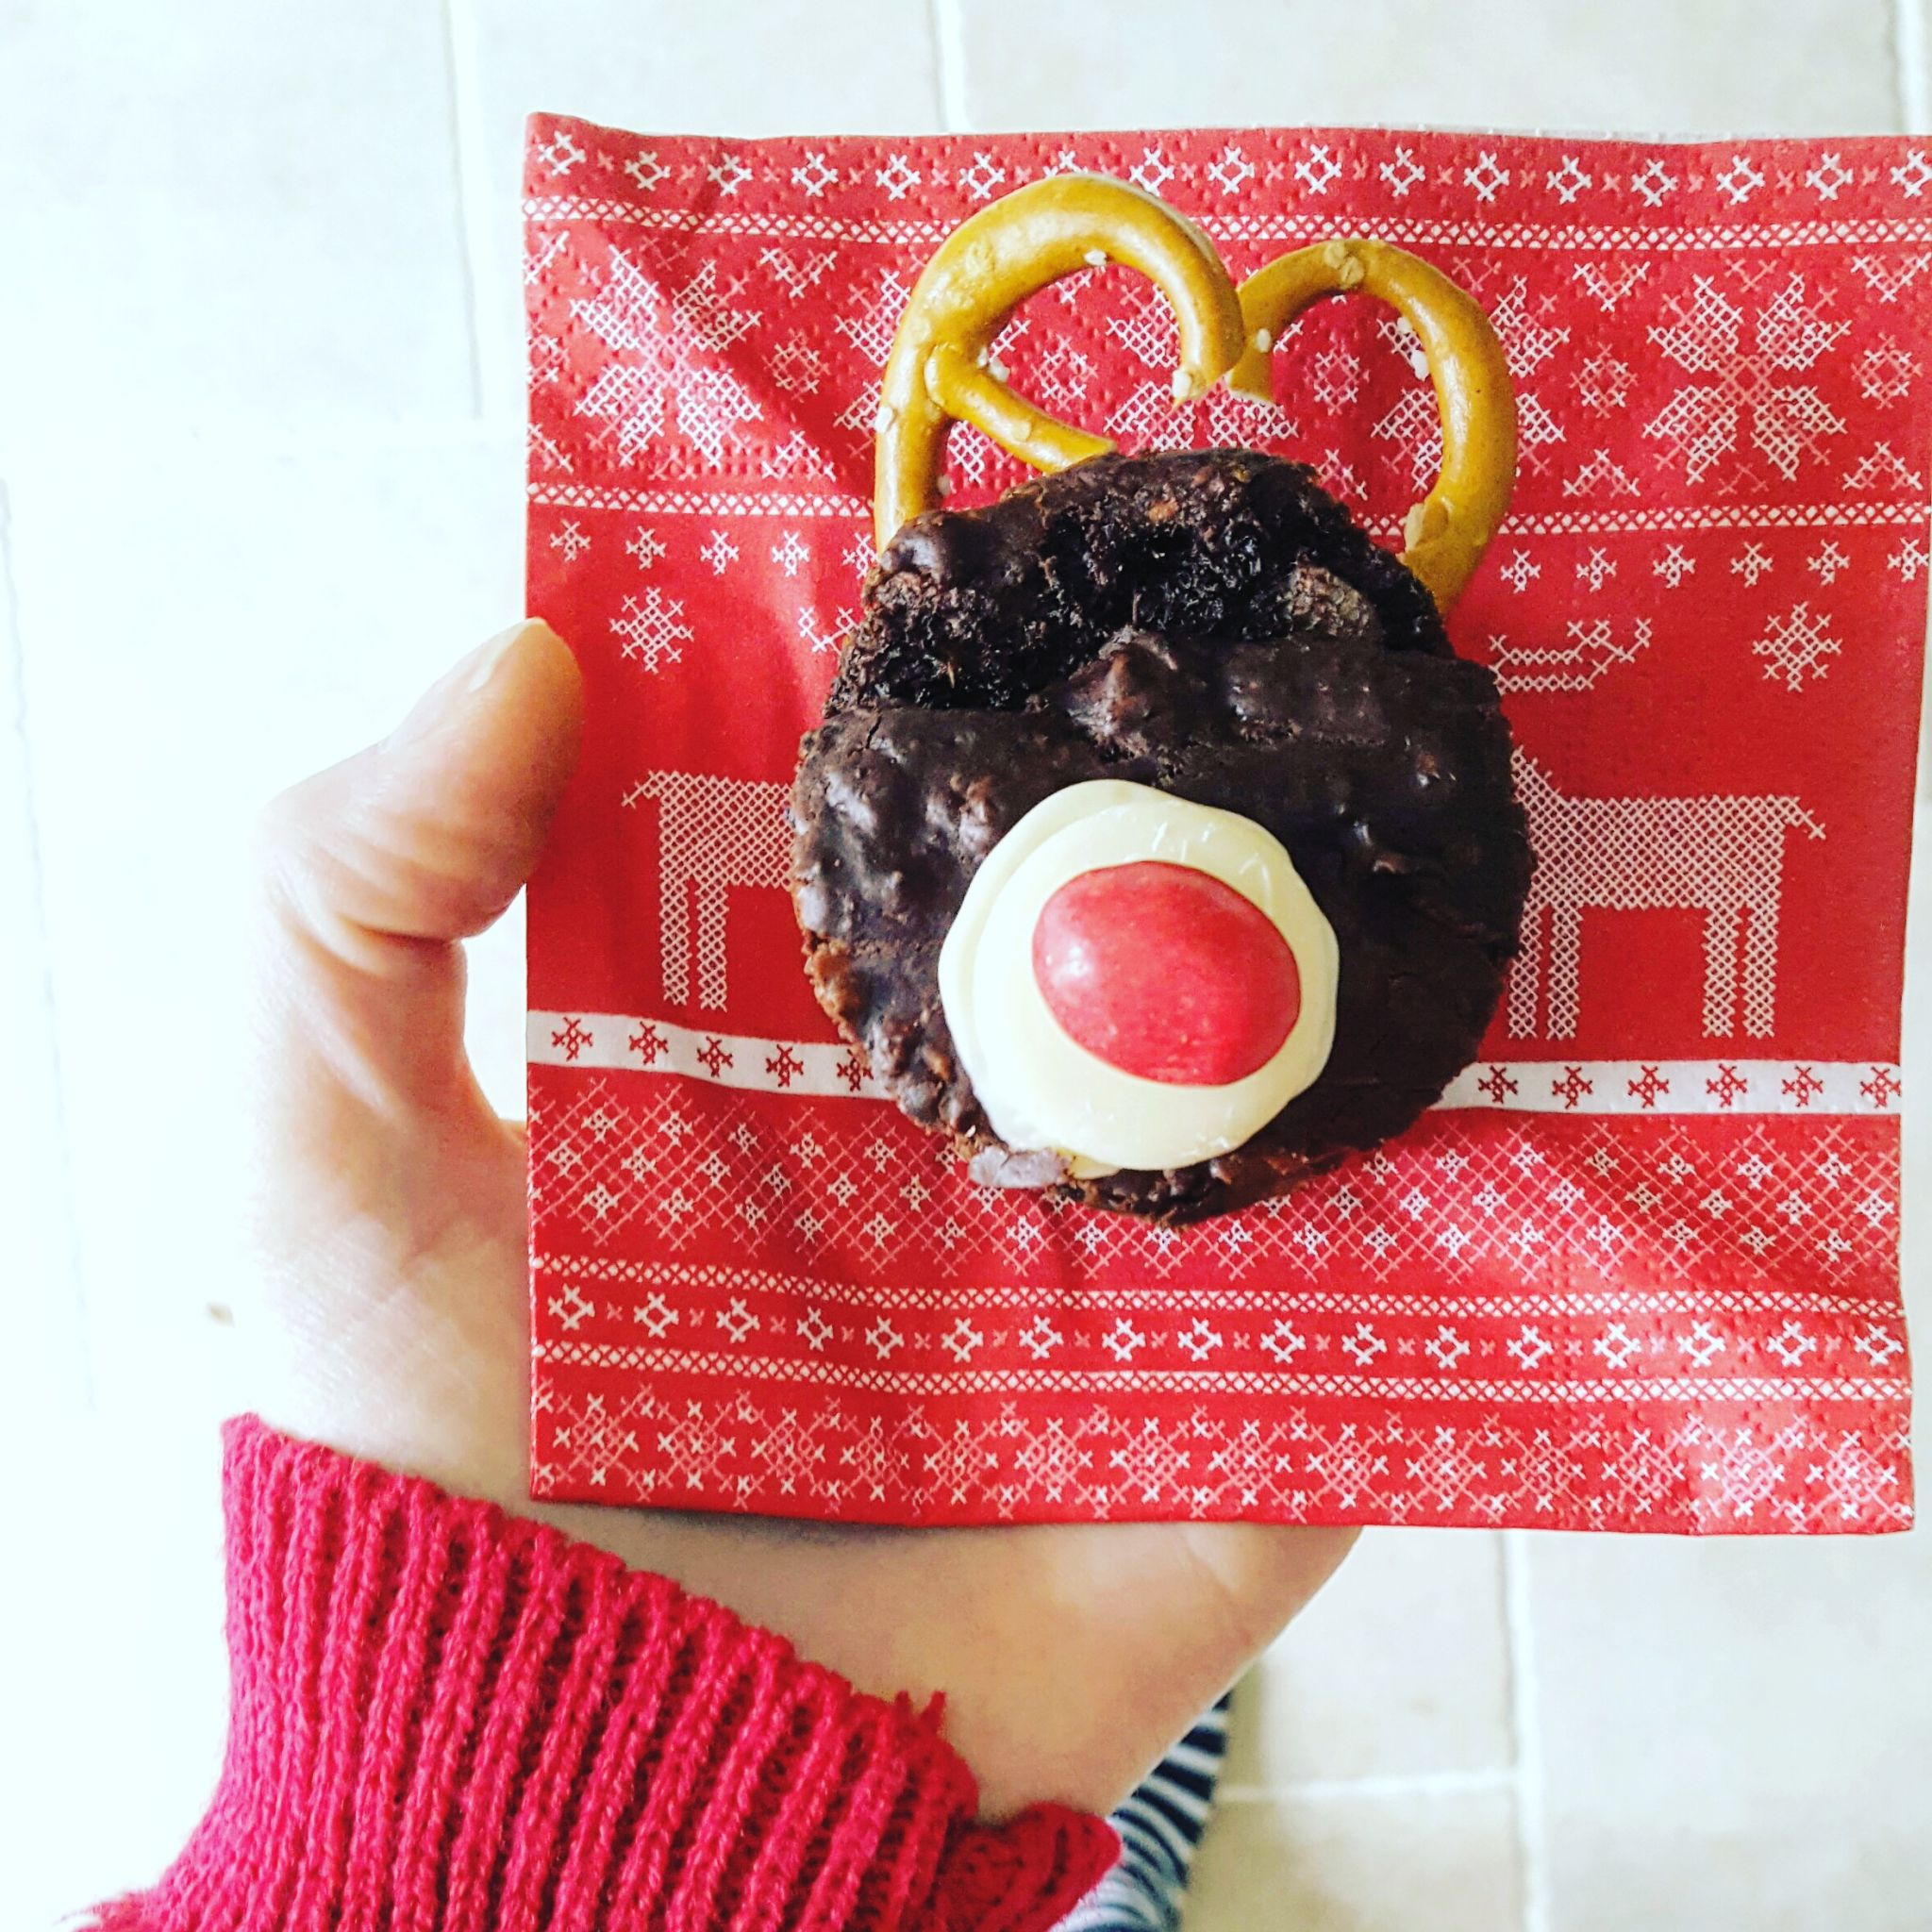 Boohoo recipe, Christmas festive reindeer sweet potato brownie